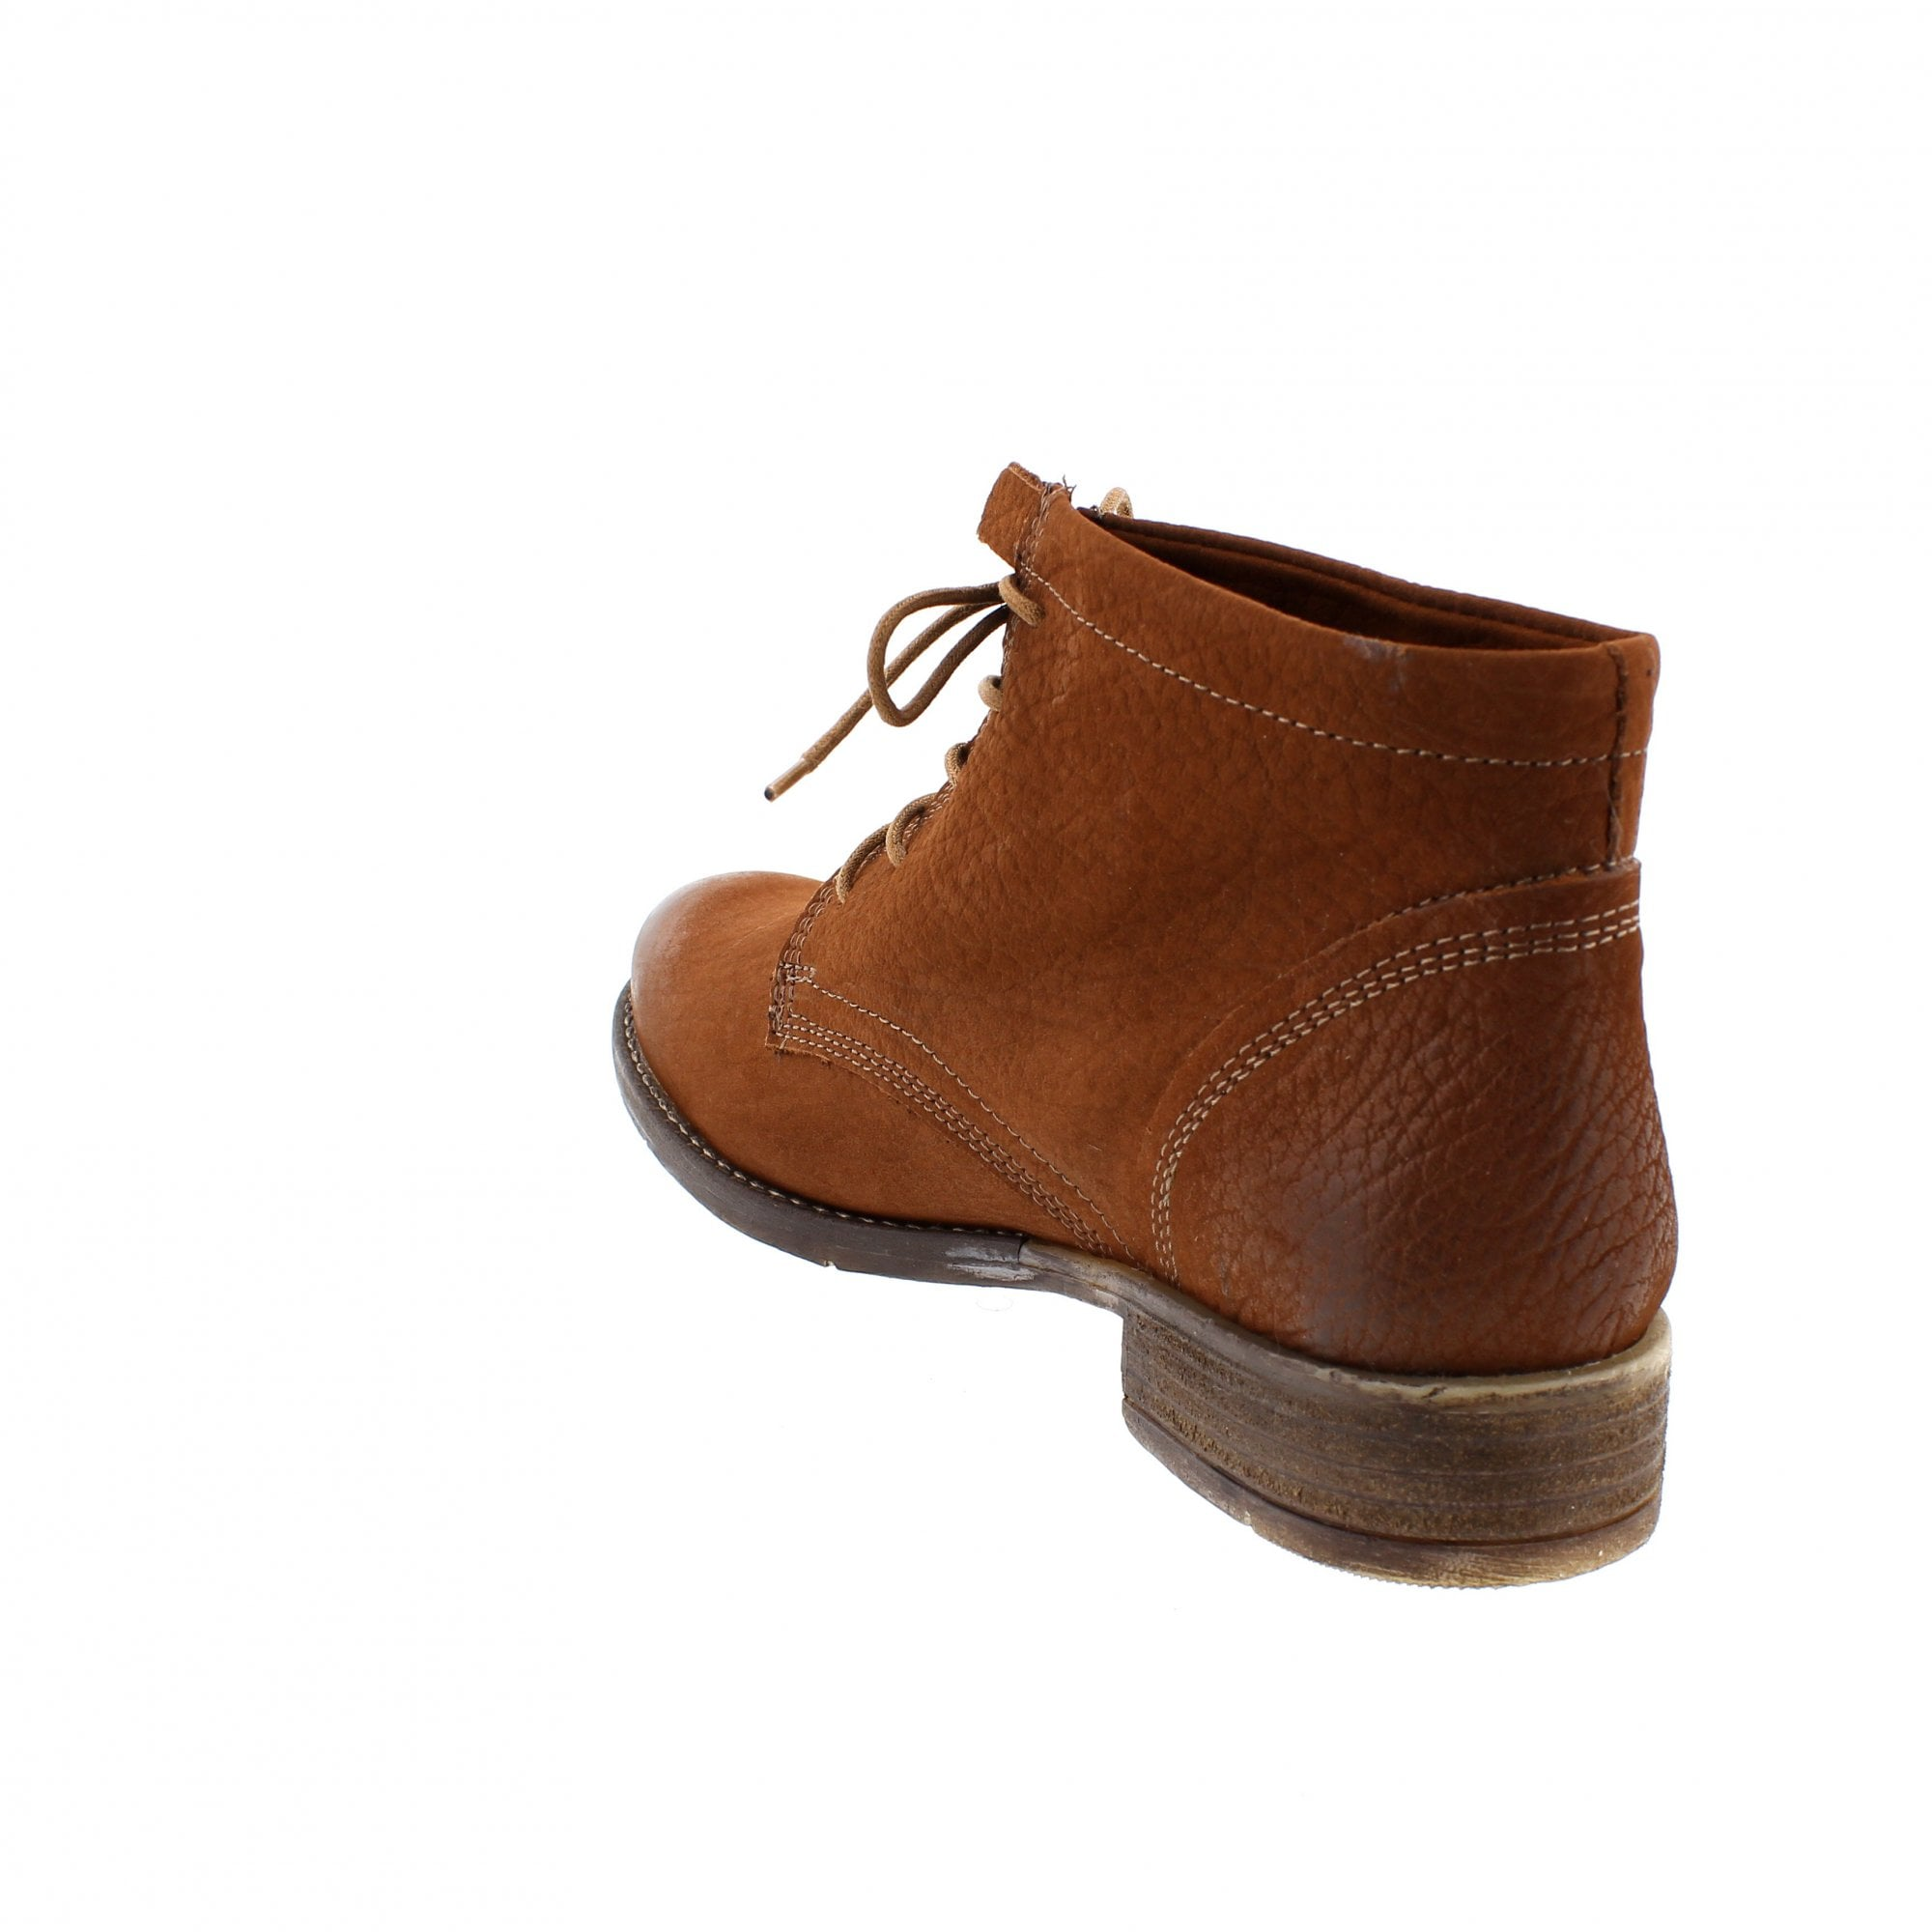 4a3afd428f98e Josef Seibel Sienna 3 Tan Womens Ankle Boots | Rogerson Shoes